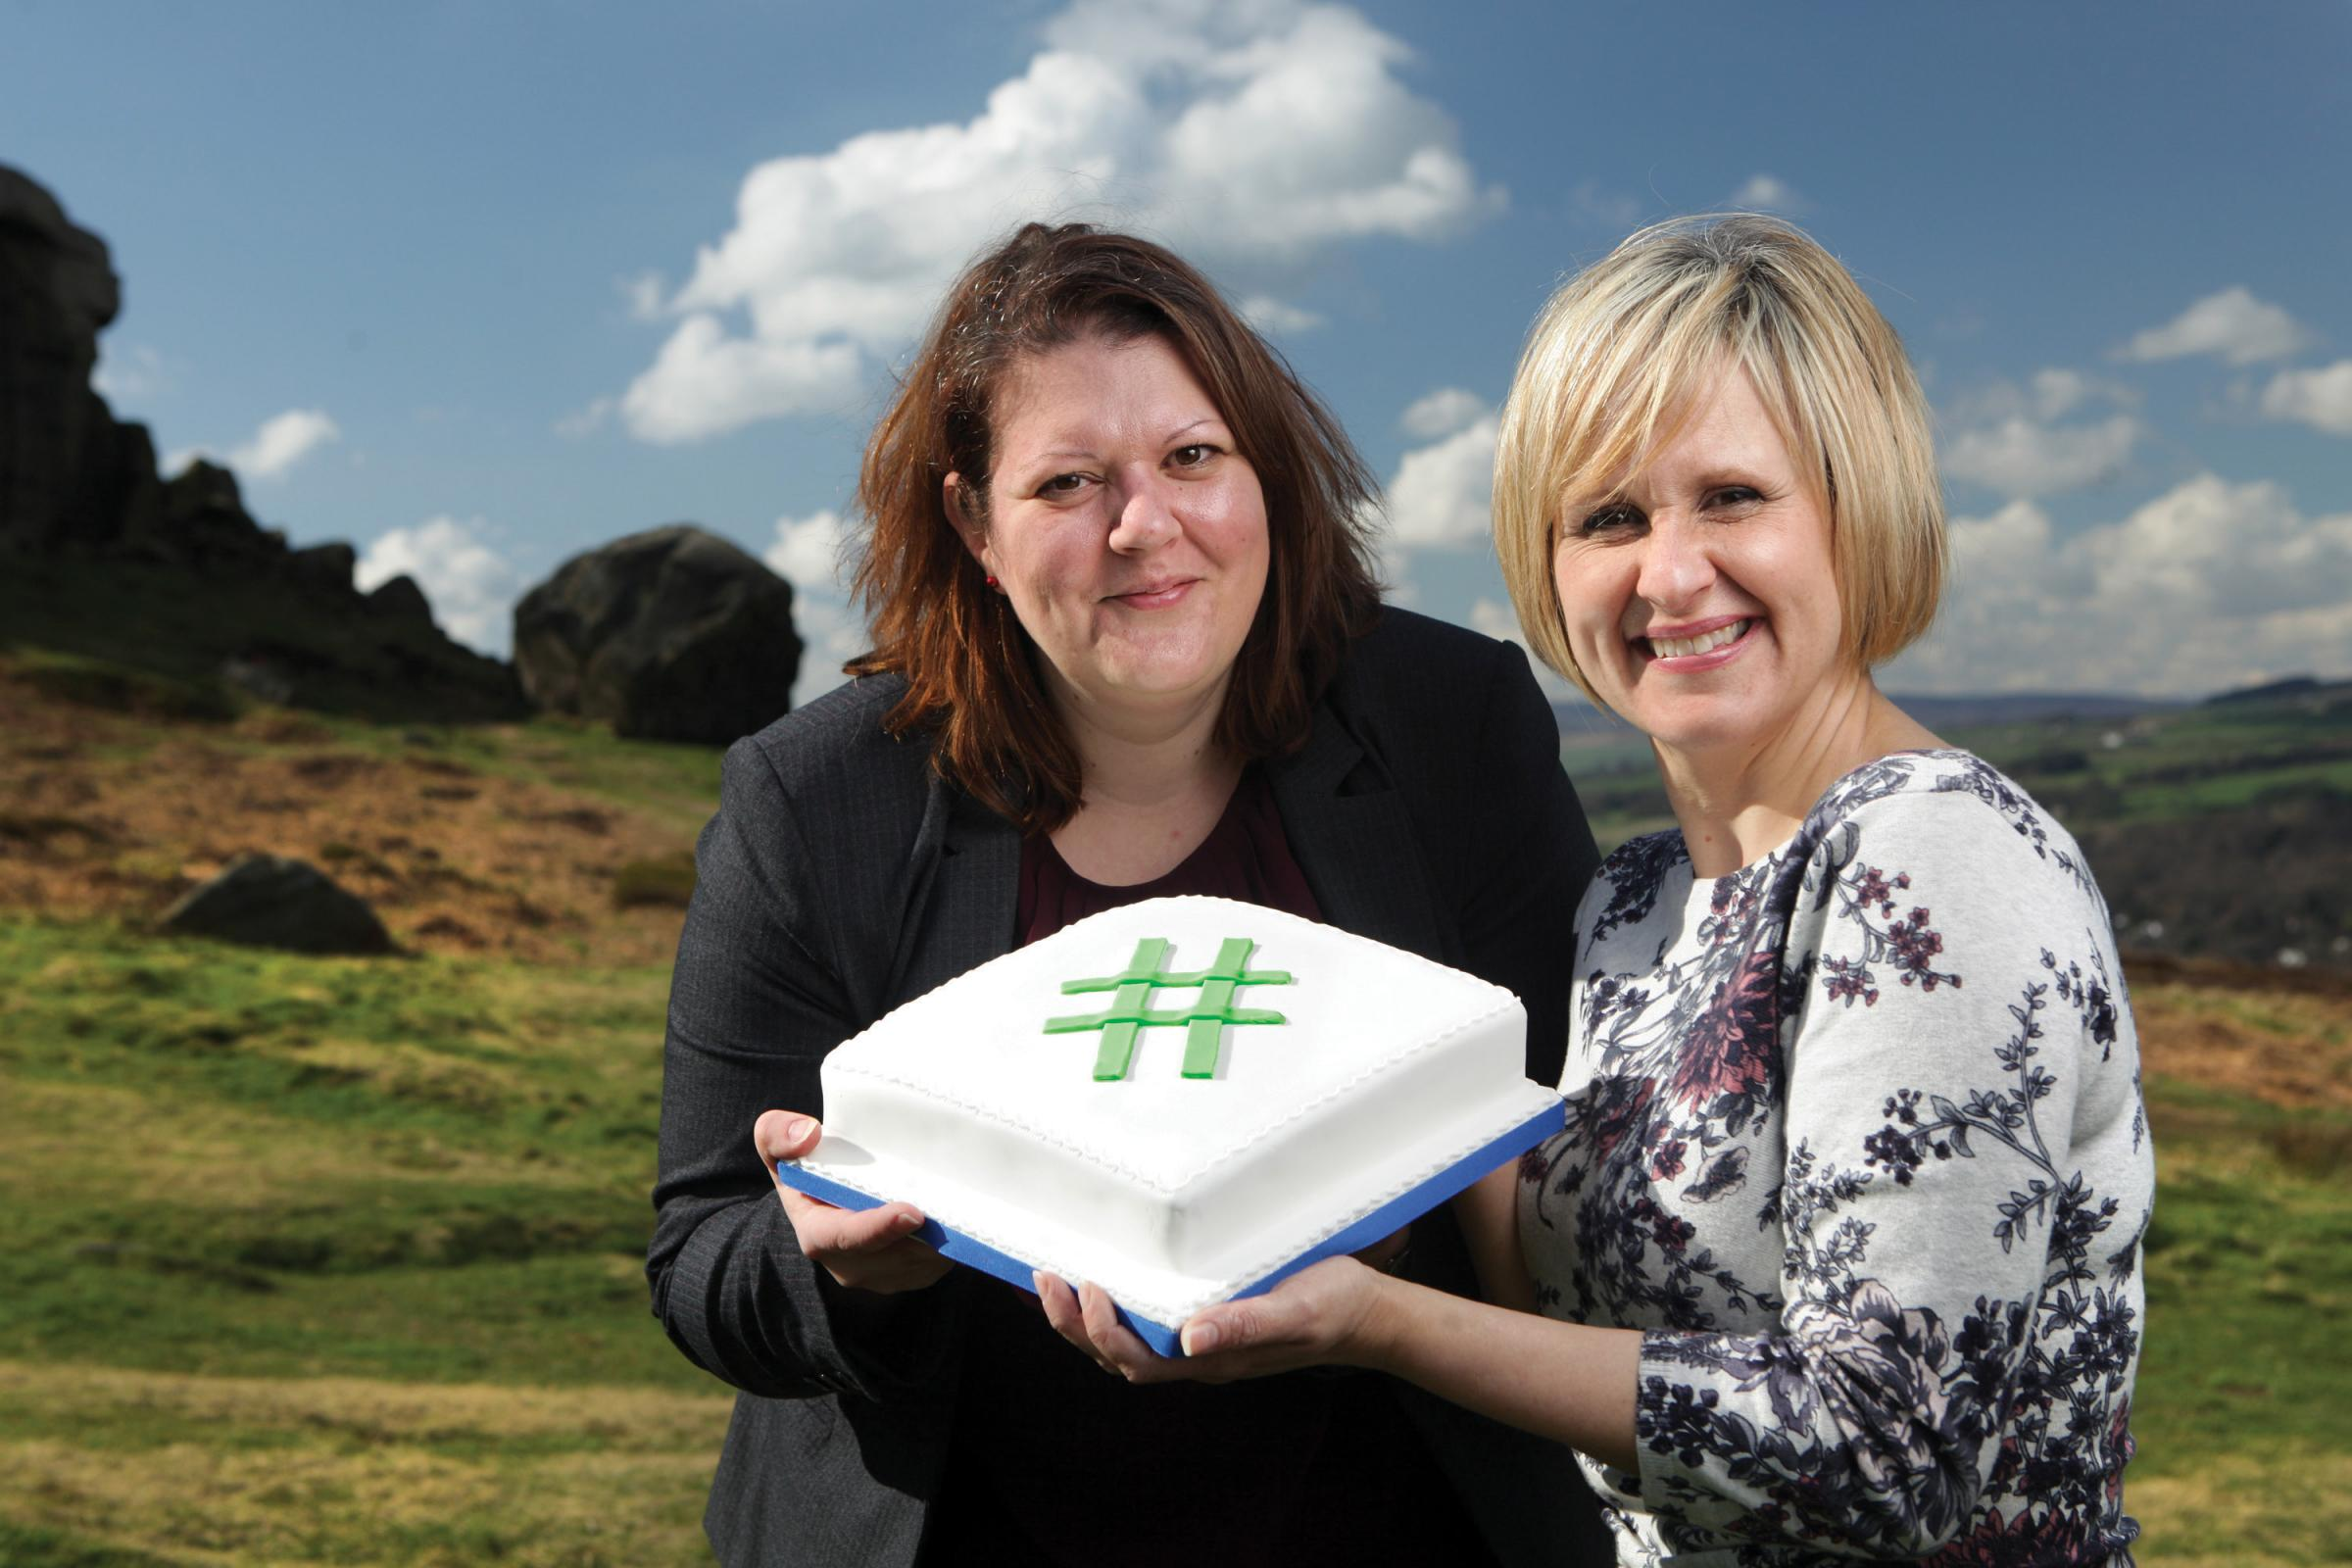 Regular #ilkleyhour tweeter Mary Moore, of Moore Than Cakes, presents Approach PR managing director Suzanne Johns with a celebratory hashtag cake to celebrate #Ilkleyhour's first anniversary